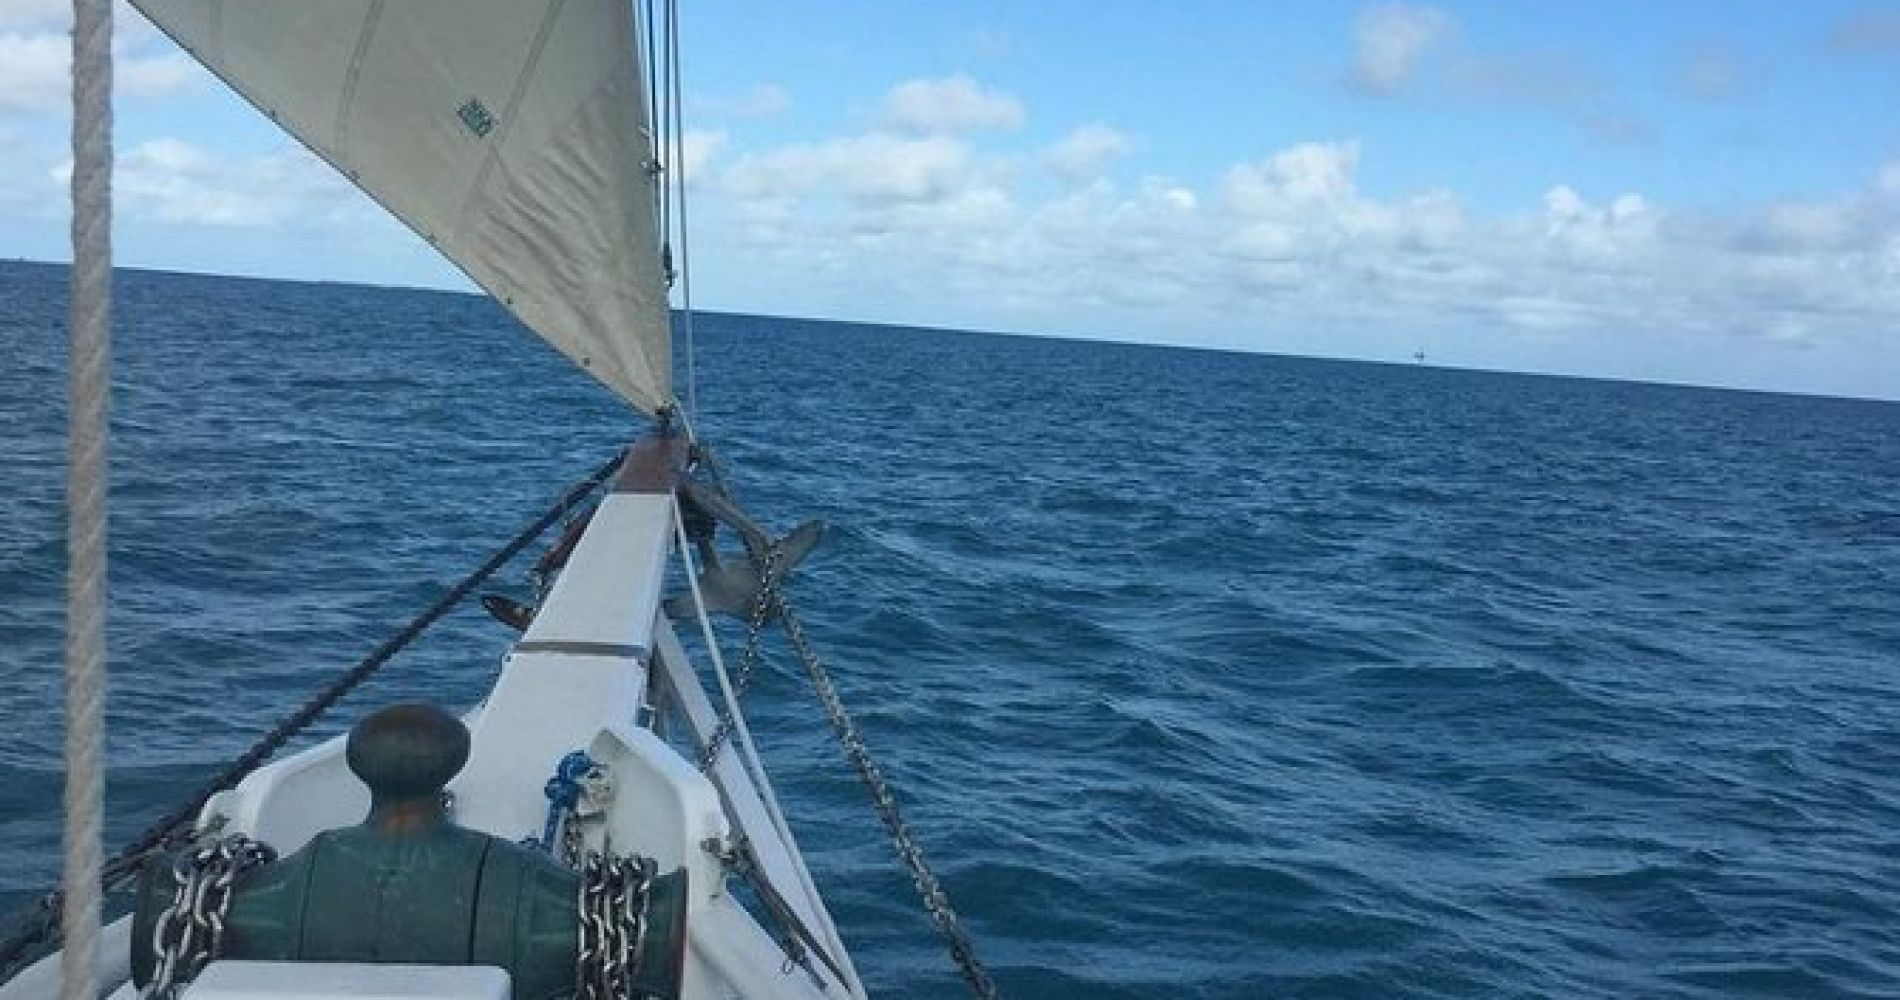 Key West Sailing Cruise with Kayaking and Snorkeling Equipment